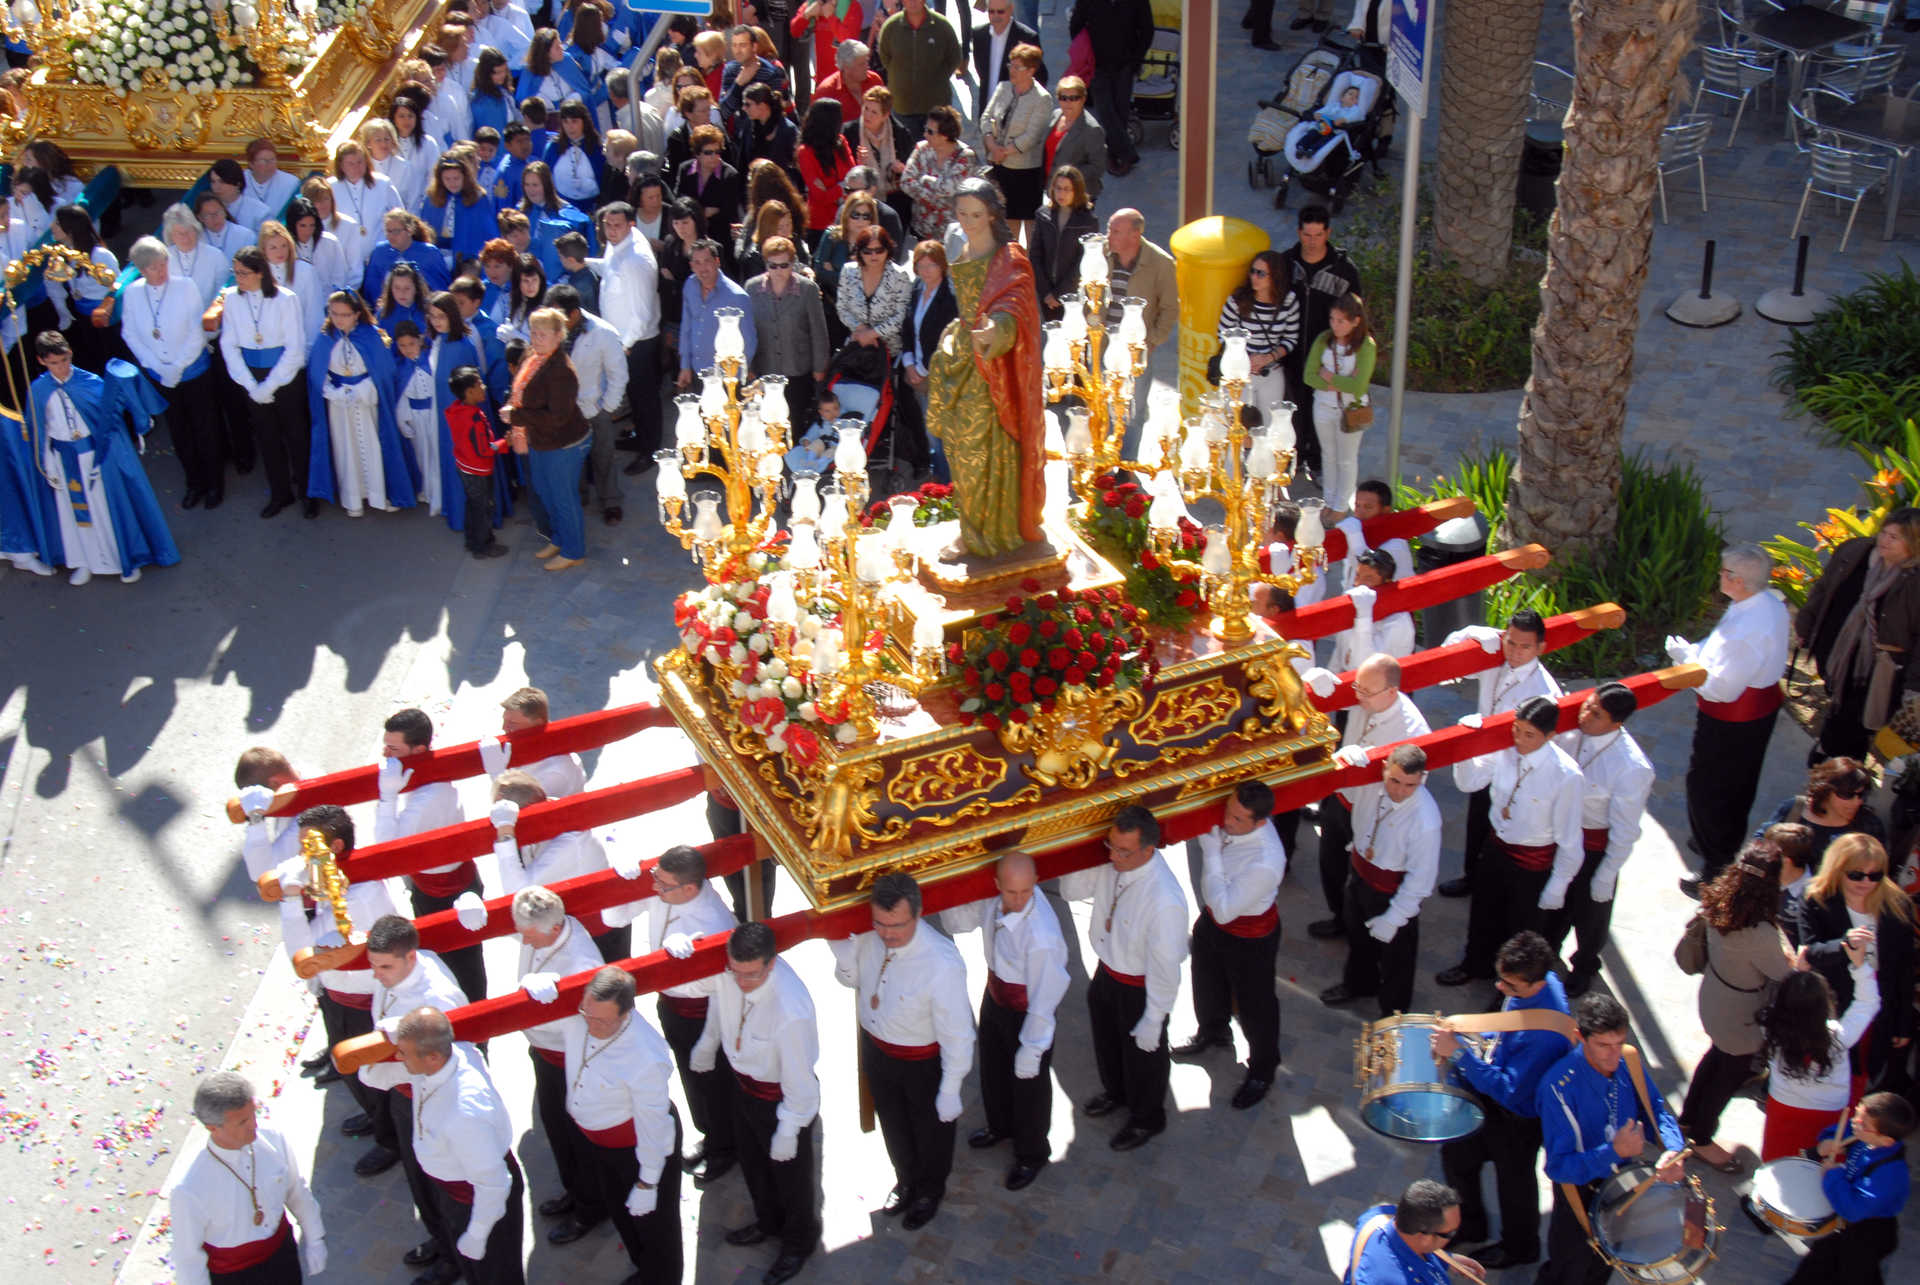 EASTER WEEK IN PILAR DE LA HORADADA